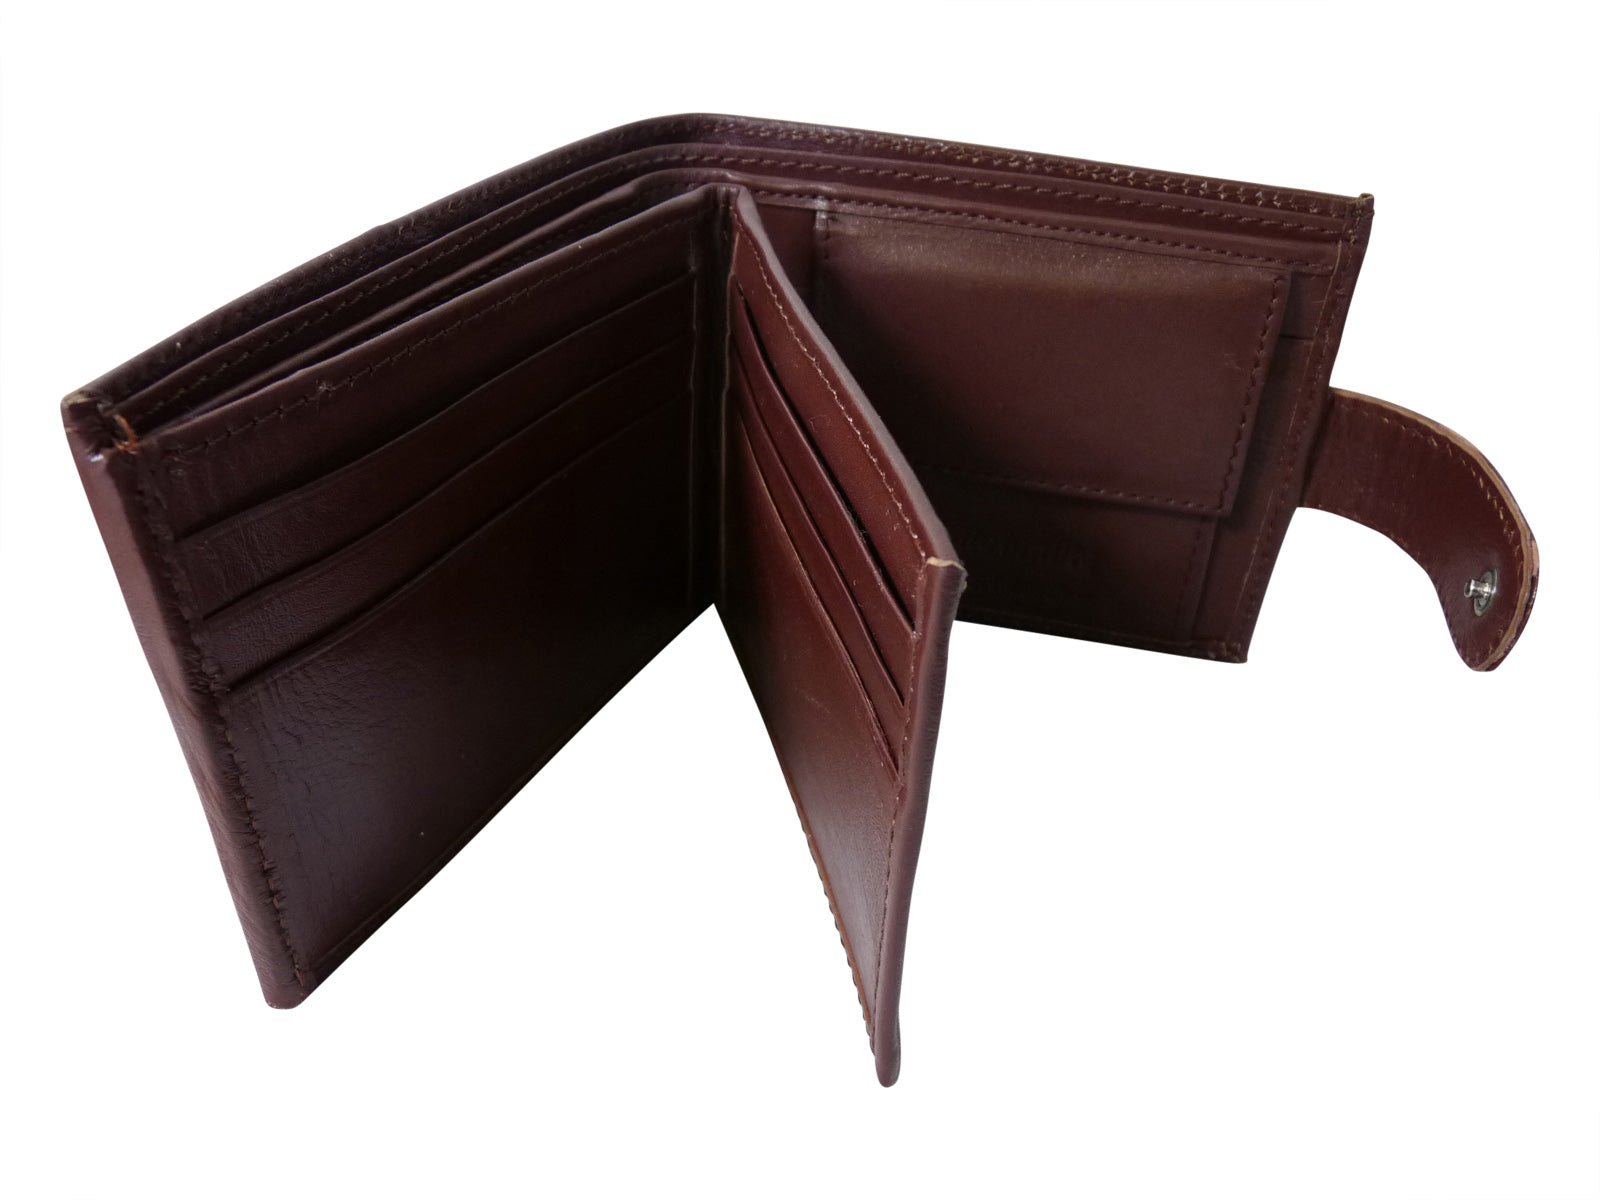 Black Leather Cards Notes and Coins Wallet RL374LB inside